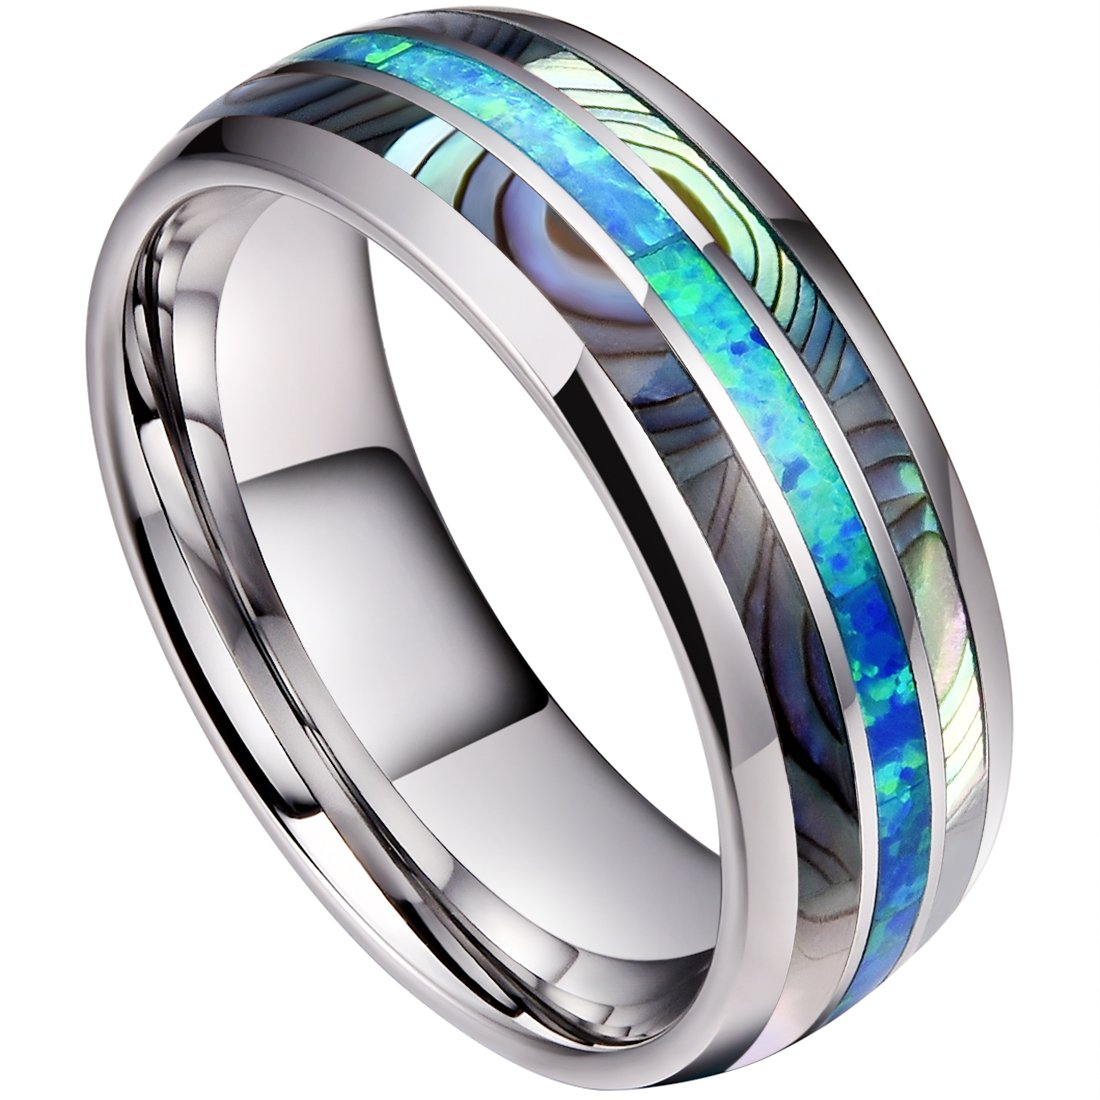 DOUX 8mm Mens Tungsten Carbide Ring Real Blue Opal & Abalone Shell Inlay Wedding Band High Polished